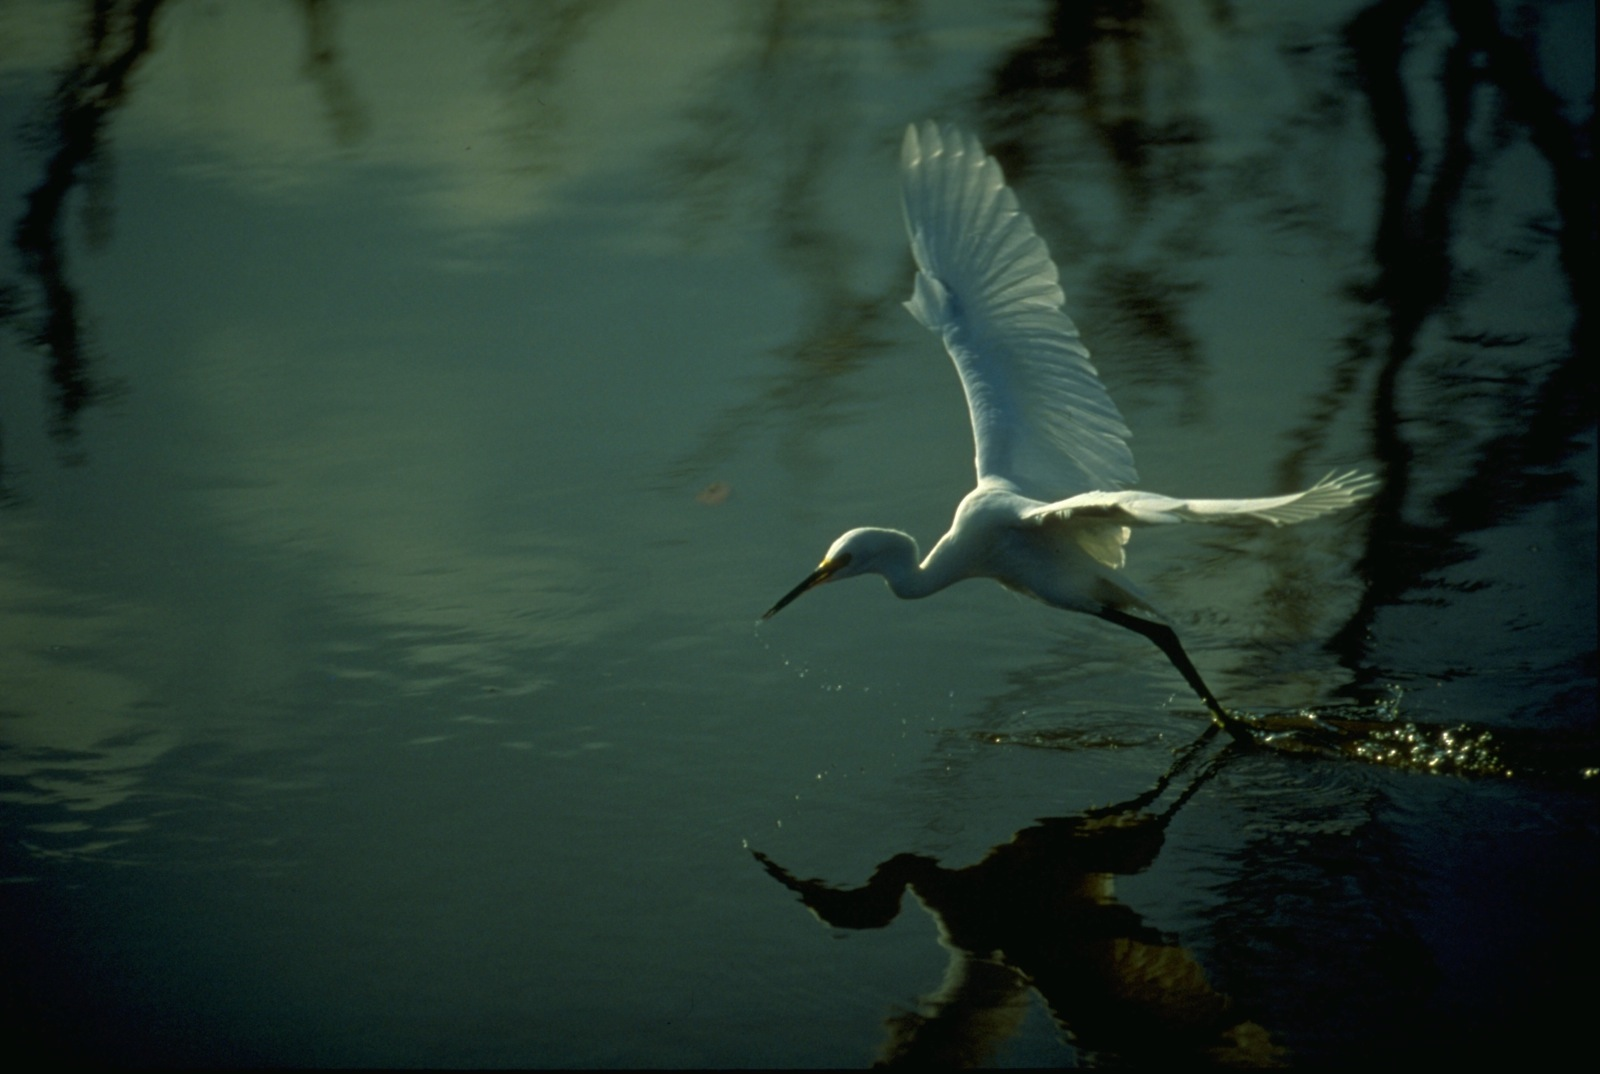 An egret flies over the glassy waters of the Florida Everglades.